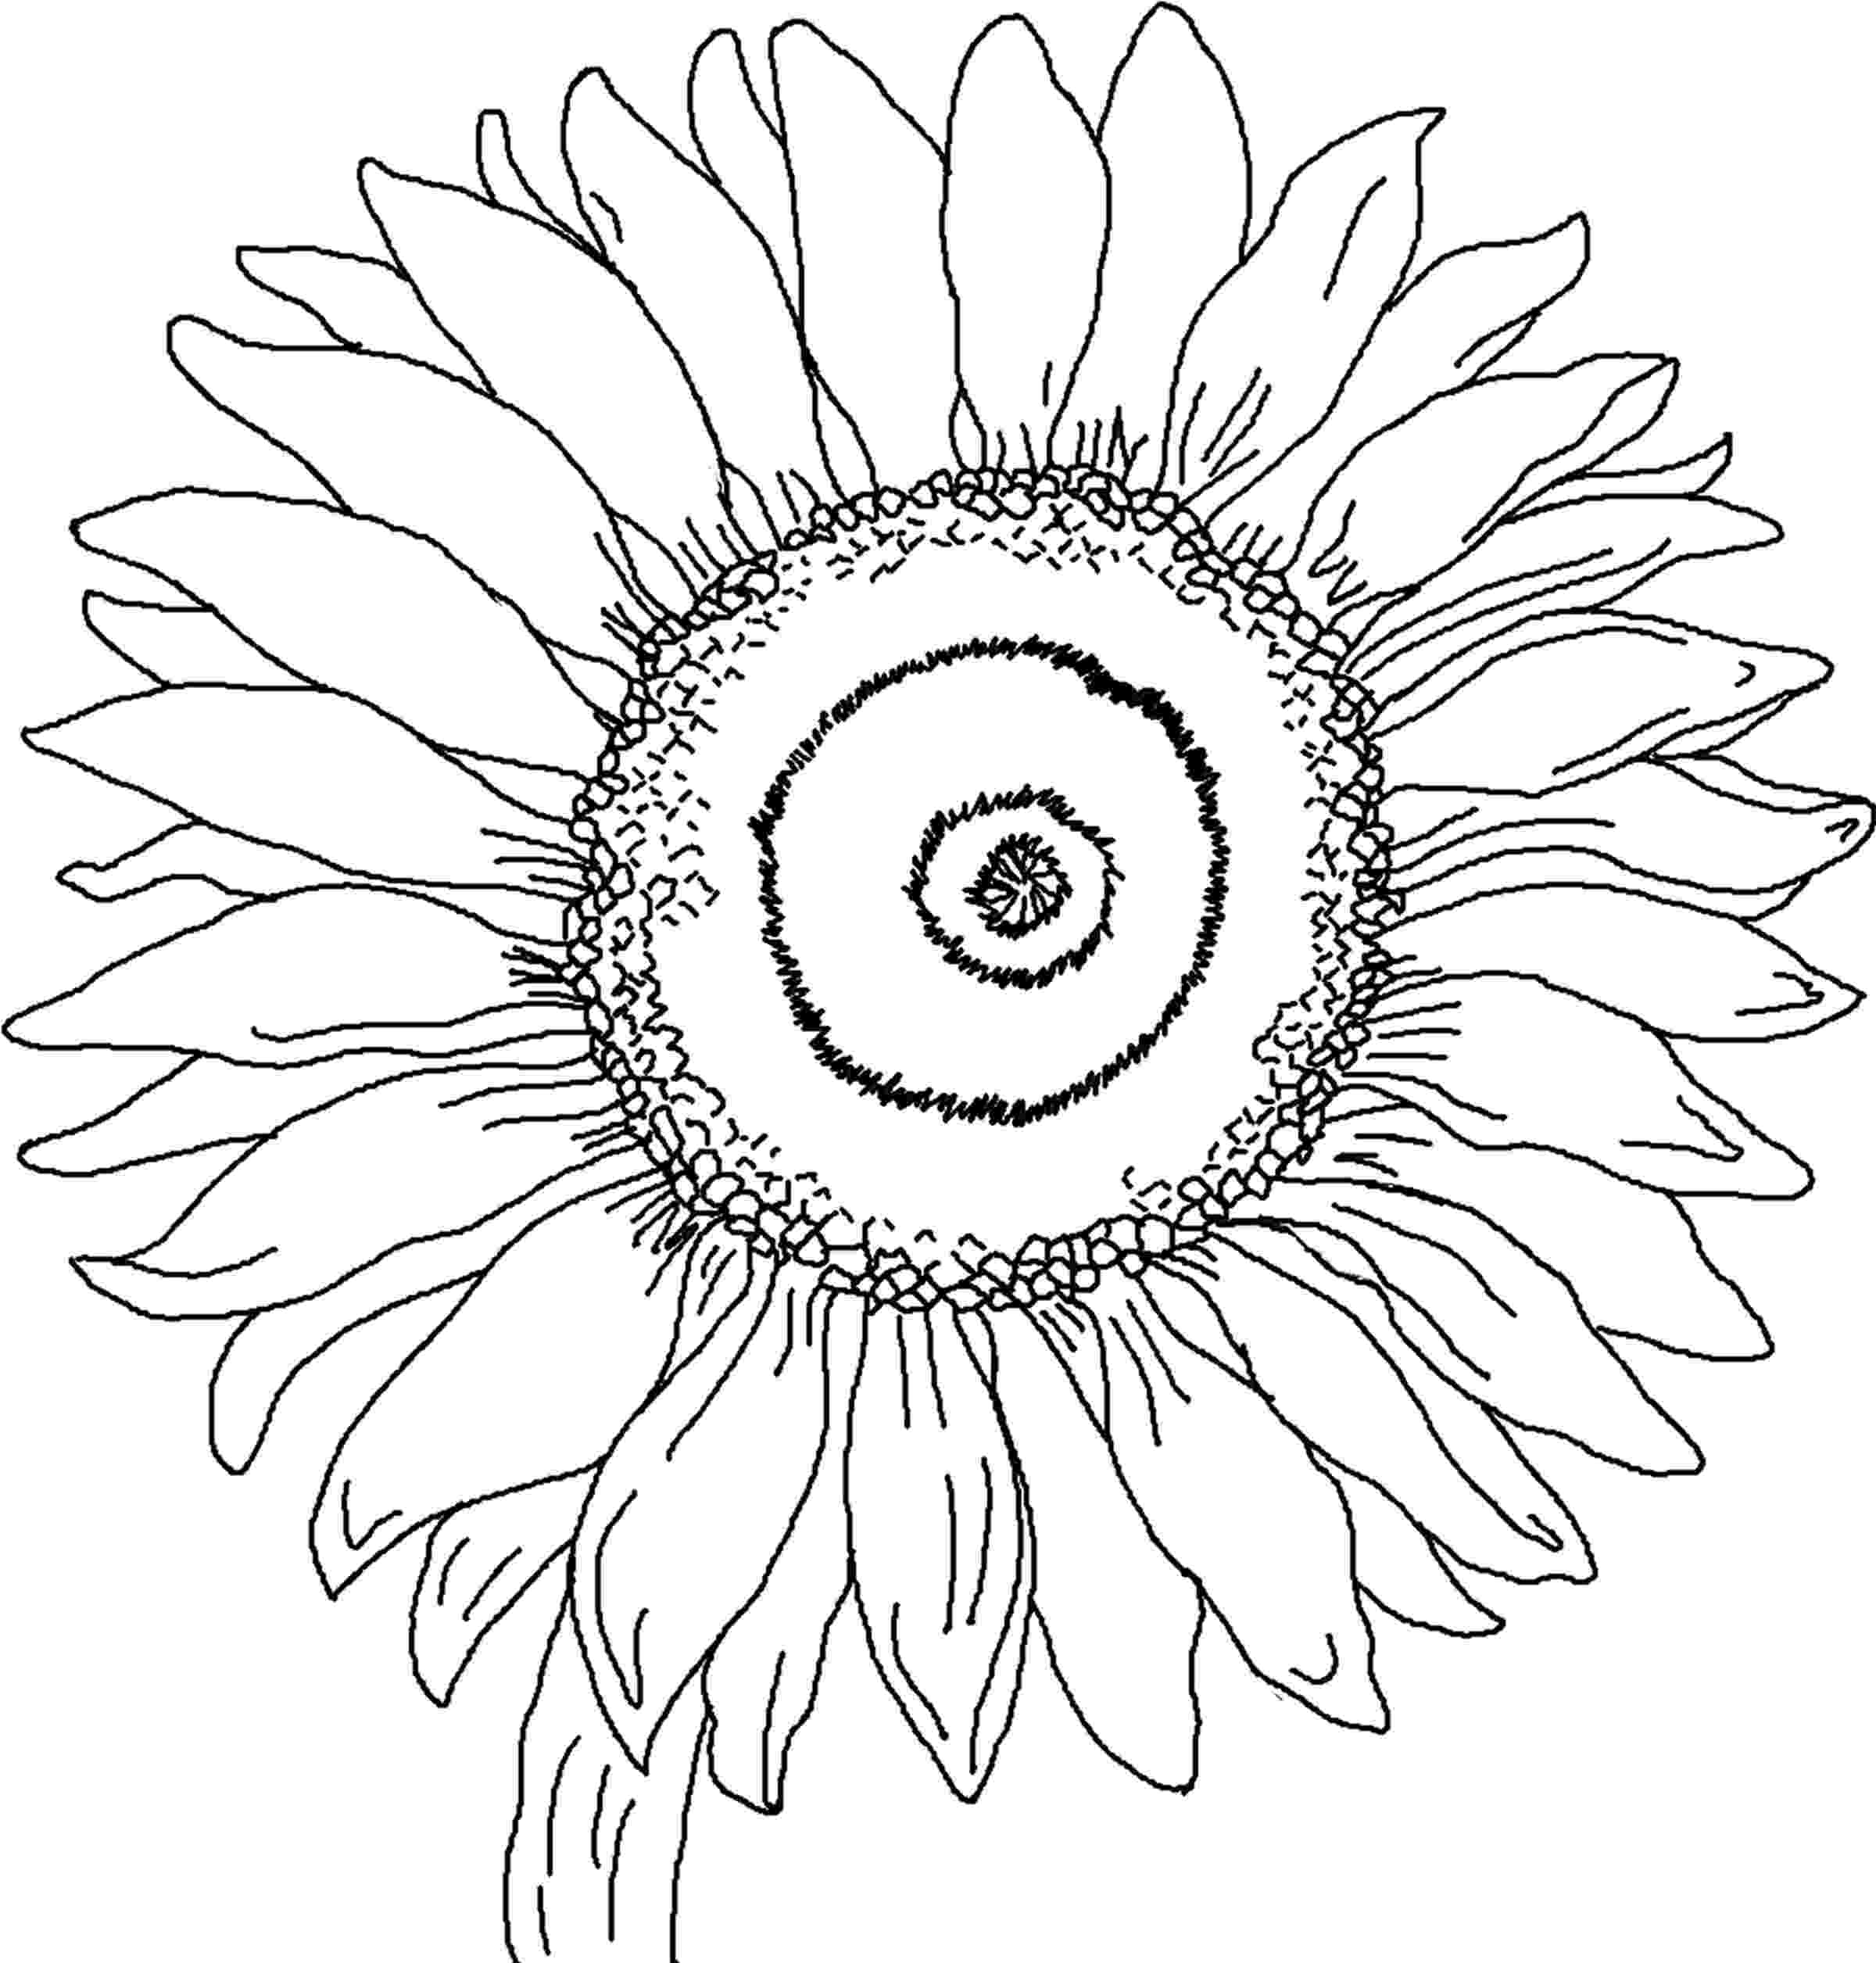 sunflower color sheet free coloring pages printable sunflower coloring pages sheet sunflower color